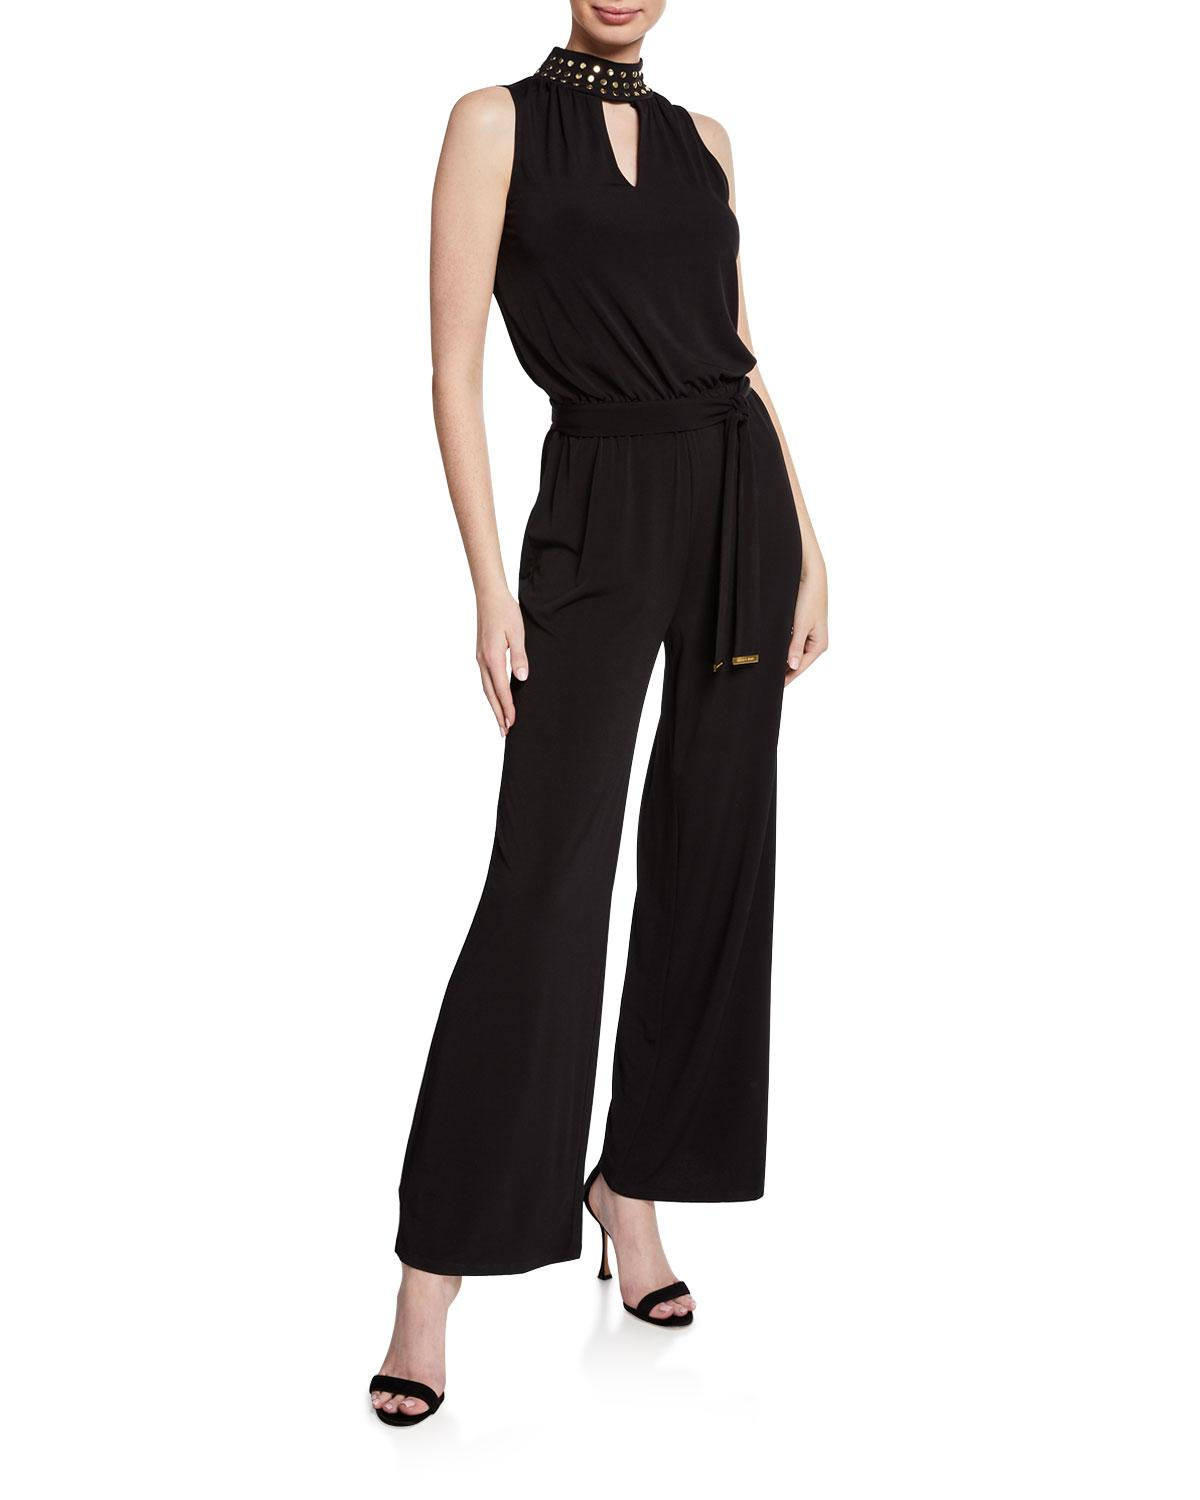 7c01138389c Lyst - MICHAEL Michael Kors Studded Mock-neck Belted Jumpsuit in ...